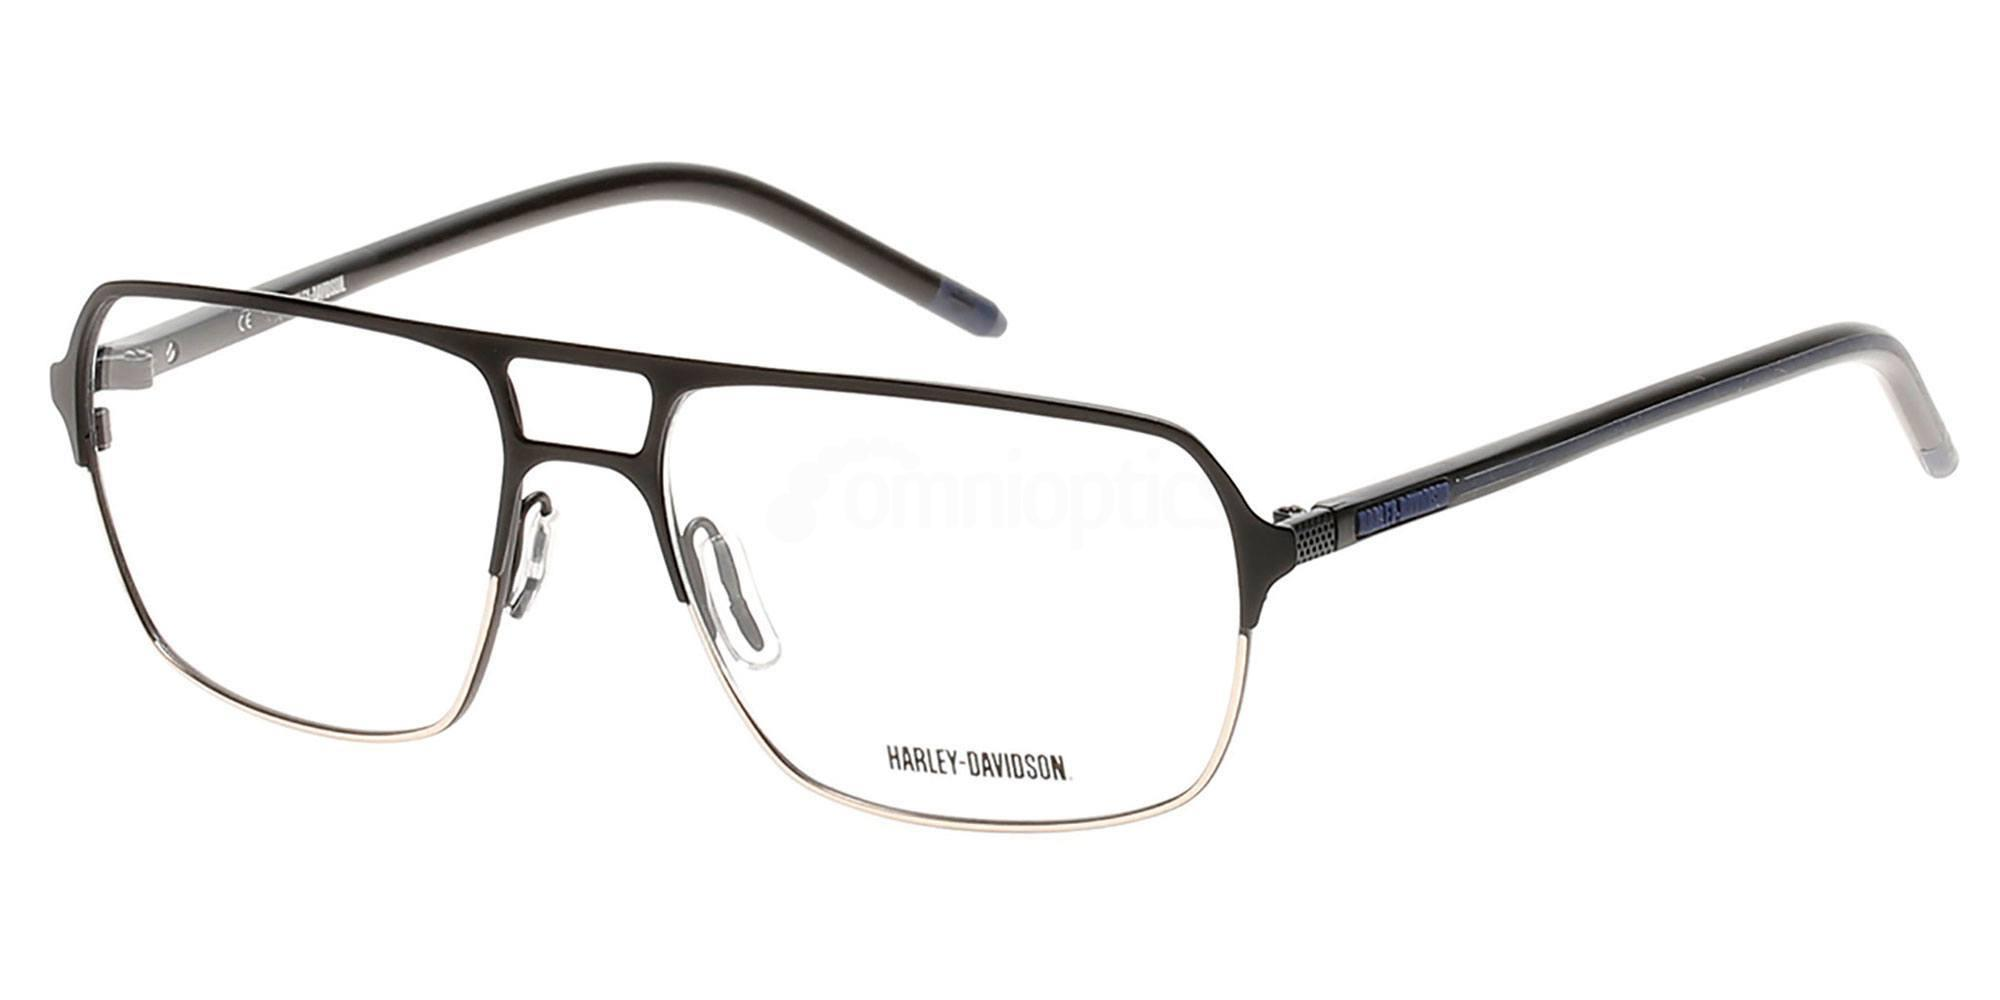 002 HD 1001 Glasses, Harley Davidson